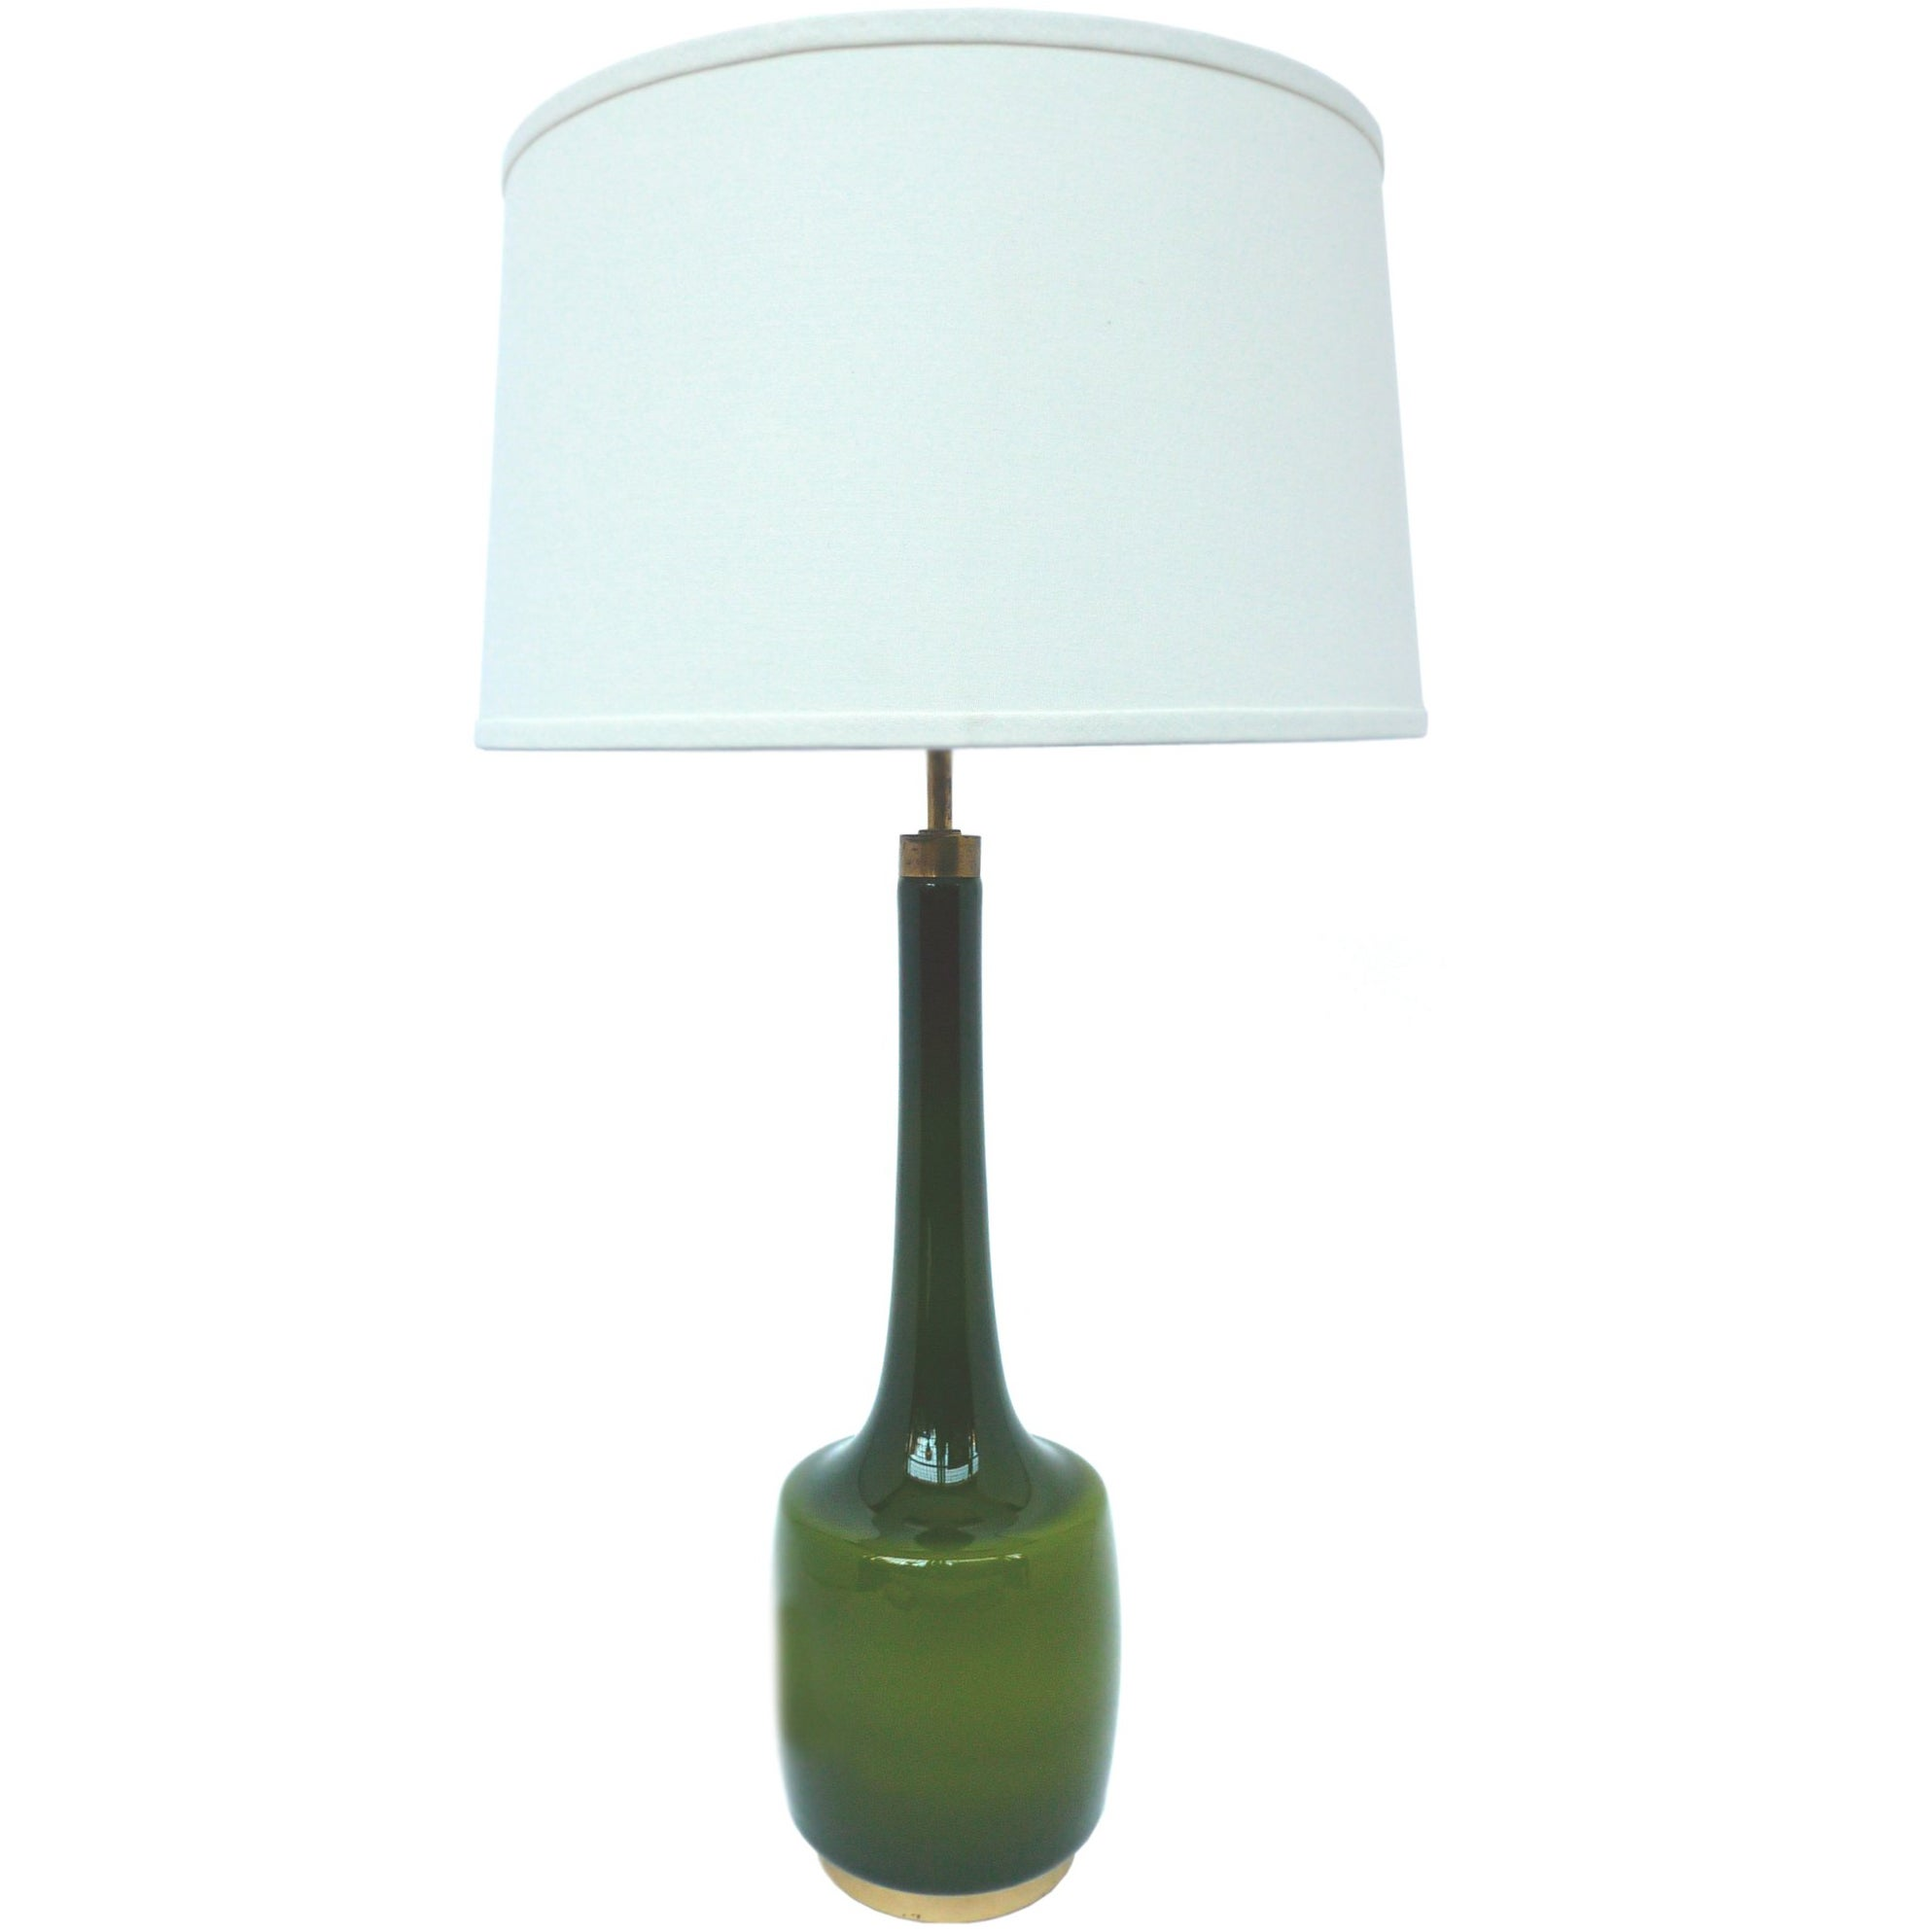 1960s Green Glass Table Lamp by Kastrup